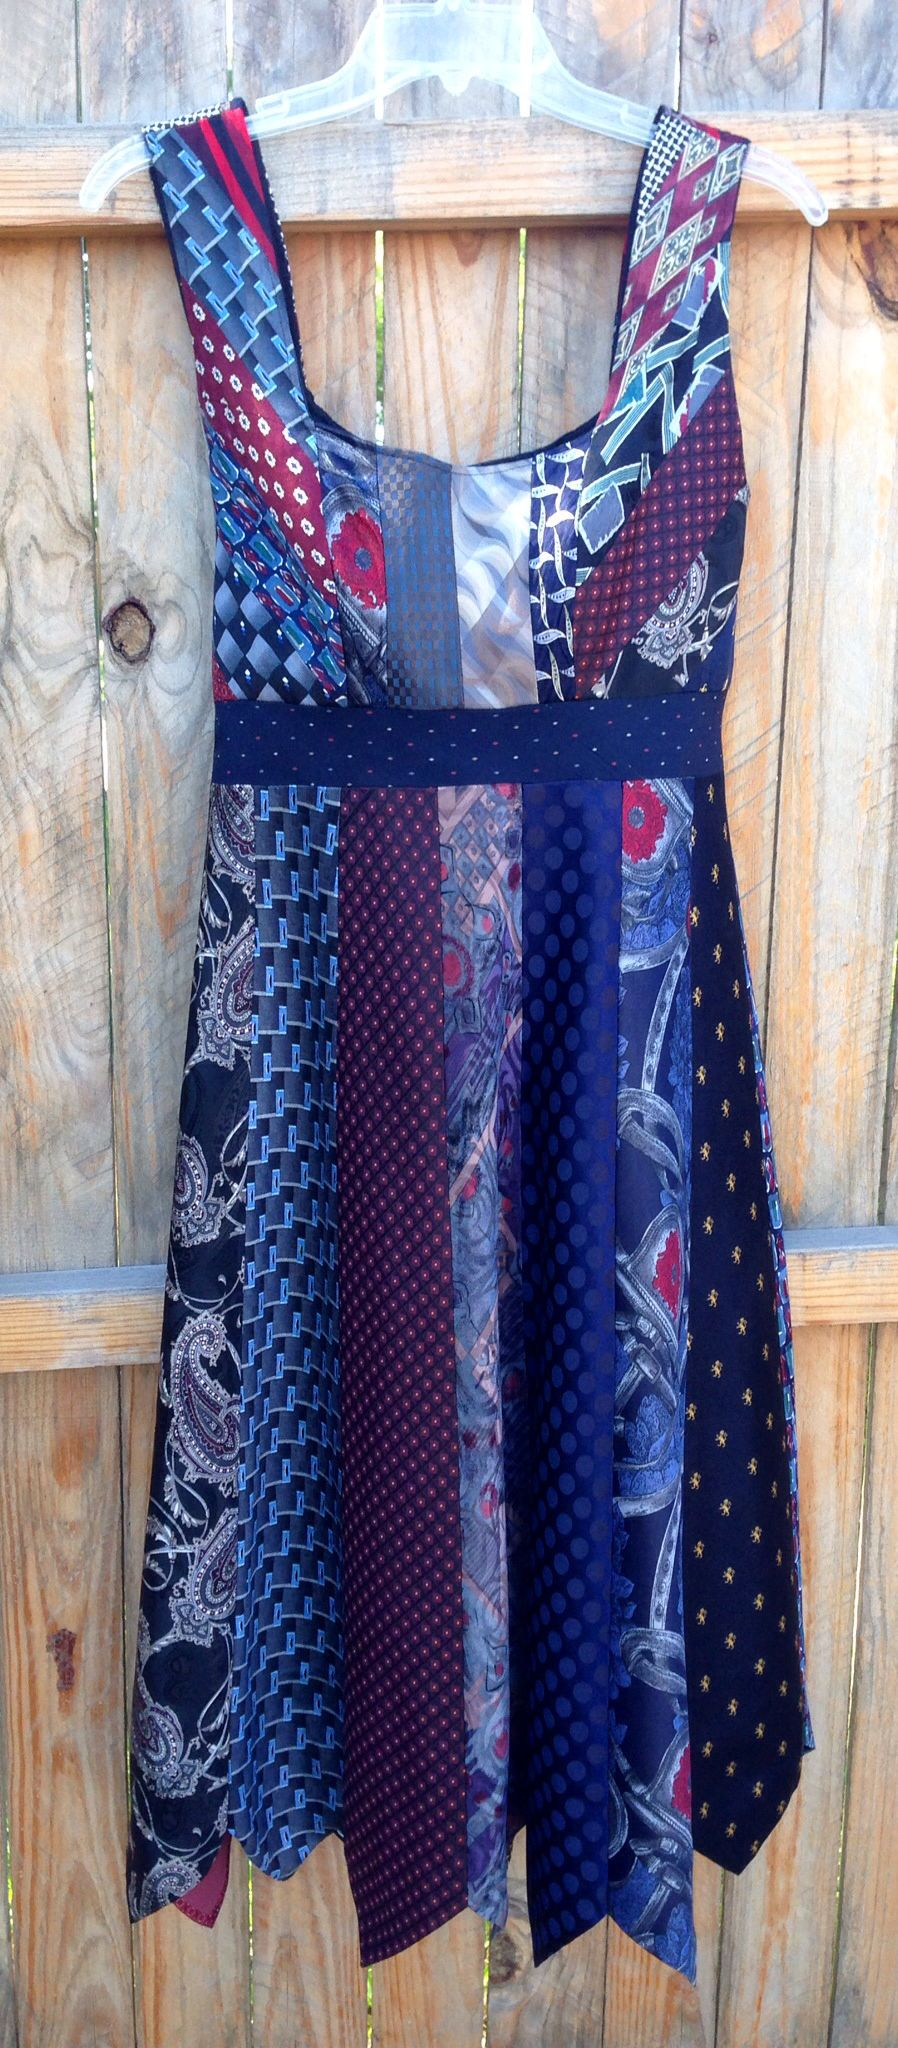 Krawattenrock Tie Dress Made With 21 Ties Photo Only You Could Sew Ties